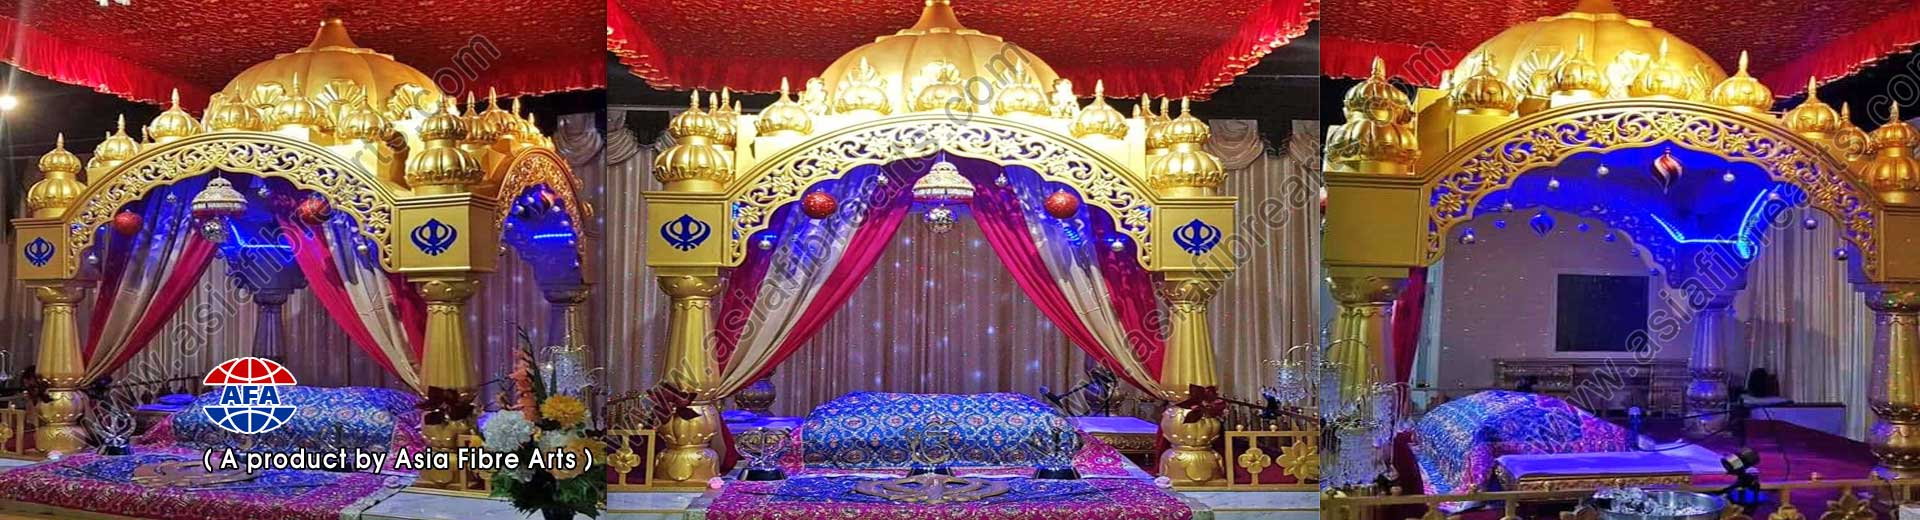 golden palki sahib manufacturers exporters in india punjab amritsar